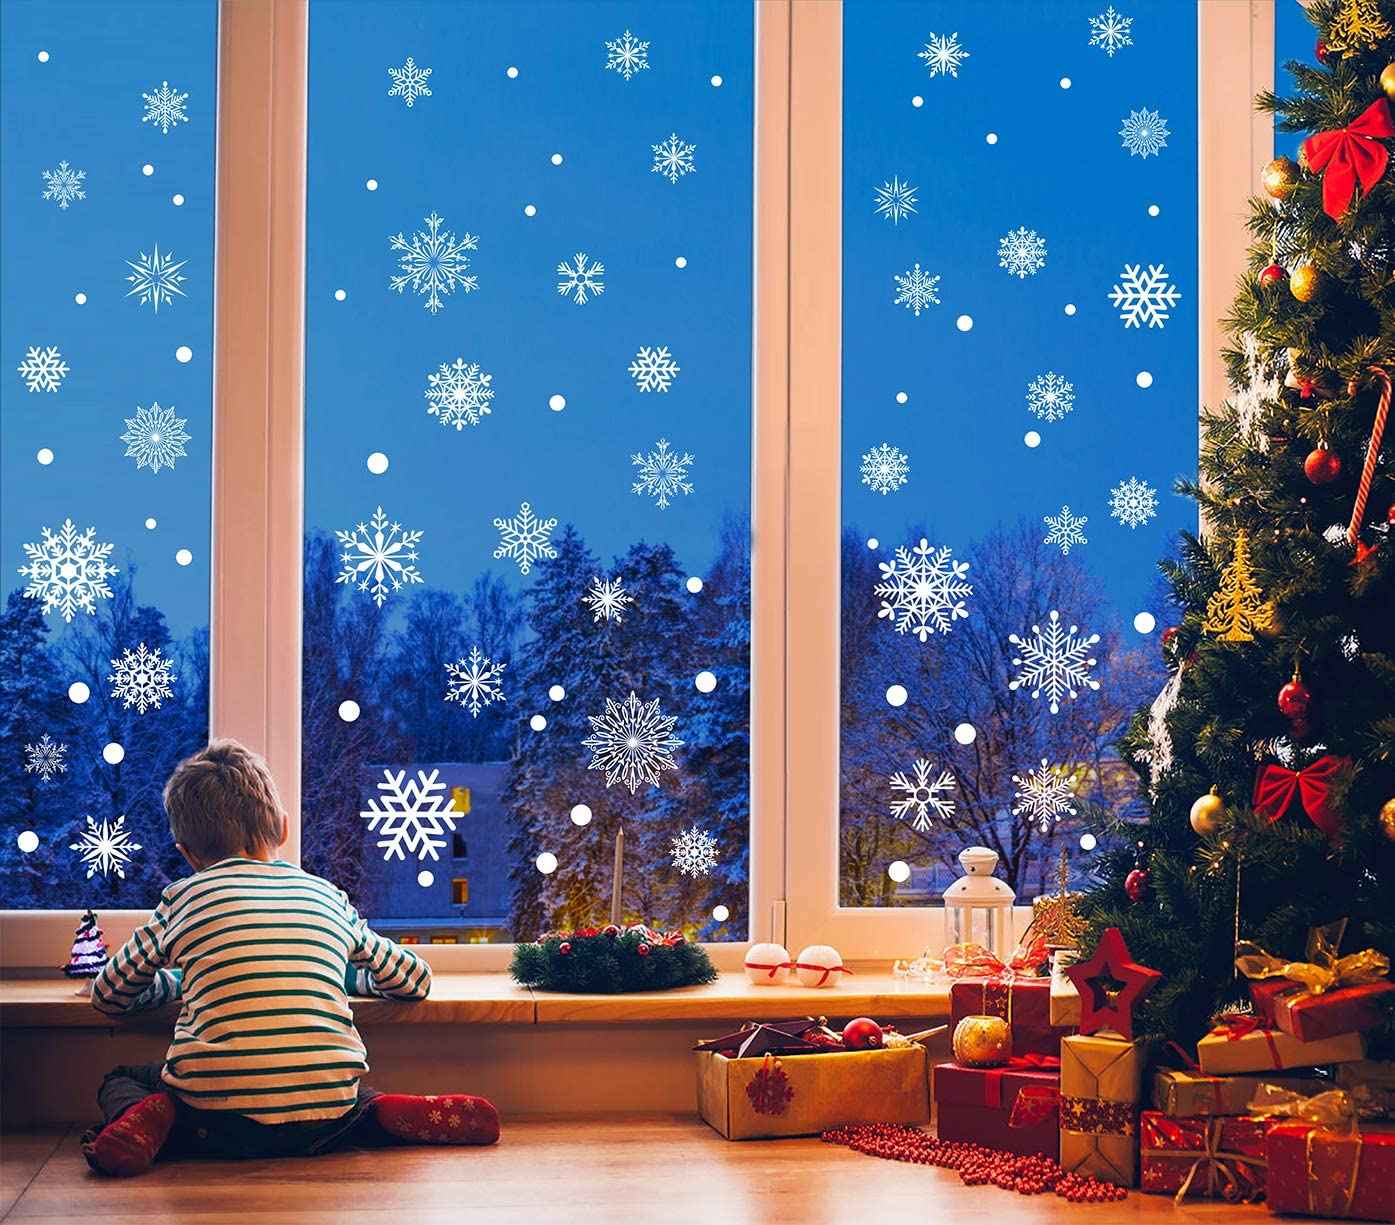 273pcs Daily bargain sale Christmas Snowflake Seasonal Wrap Introduction Window White Clings Decals Snowflakes